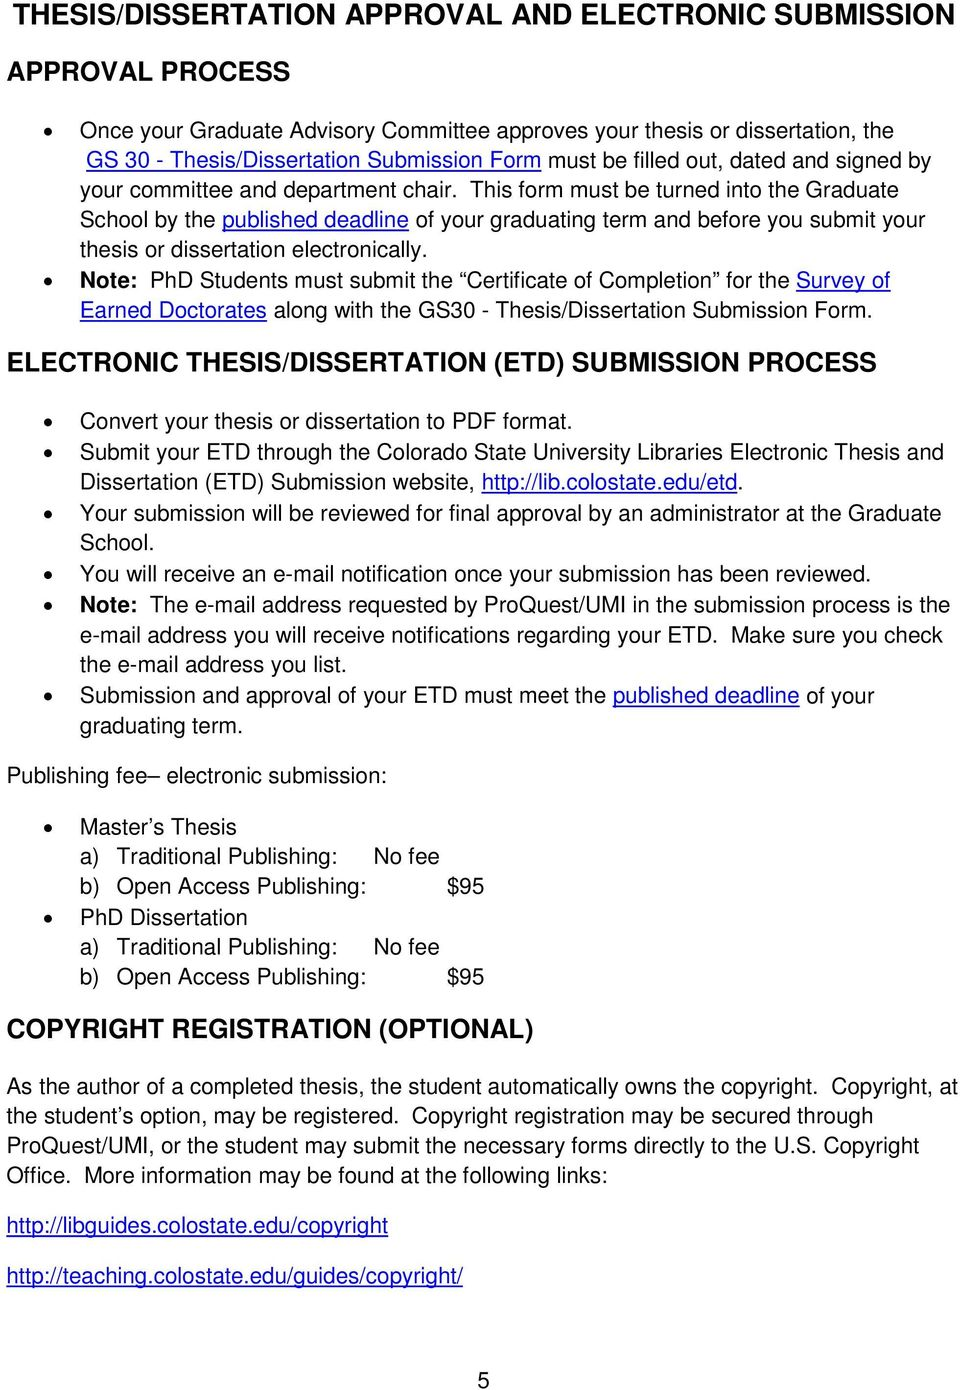 This form must be turned into the Graduate School by the published deadline of your graduating term and before you submit your thesis or dissertation electronically.